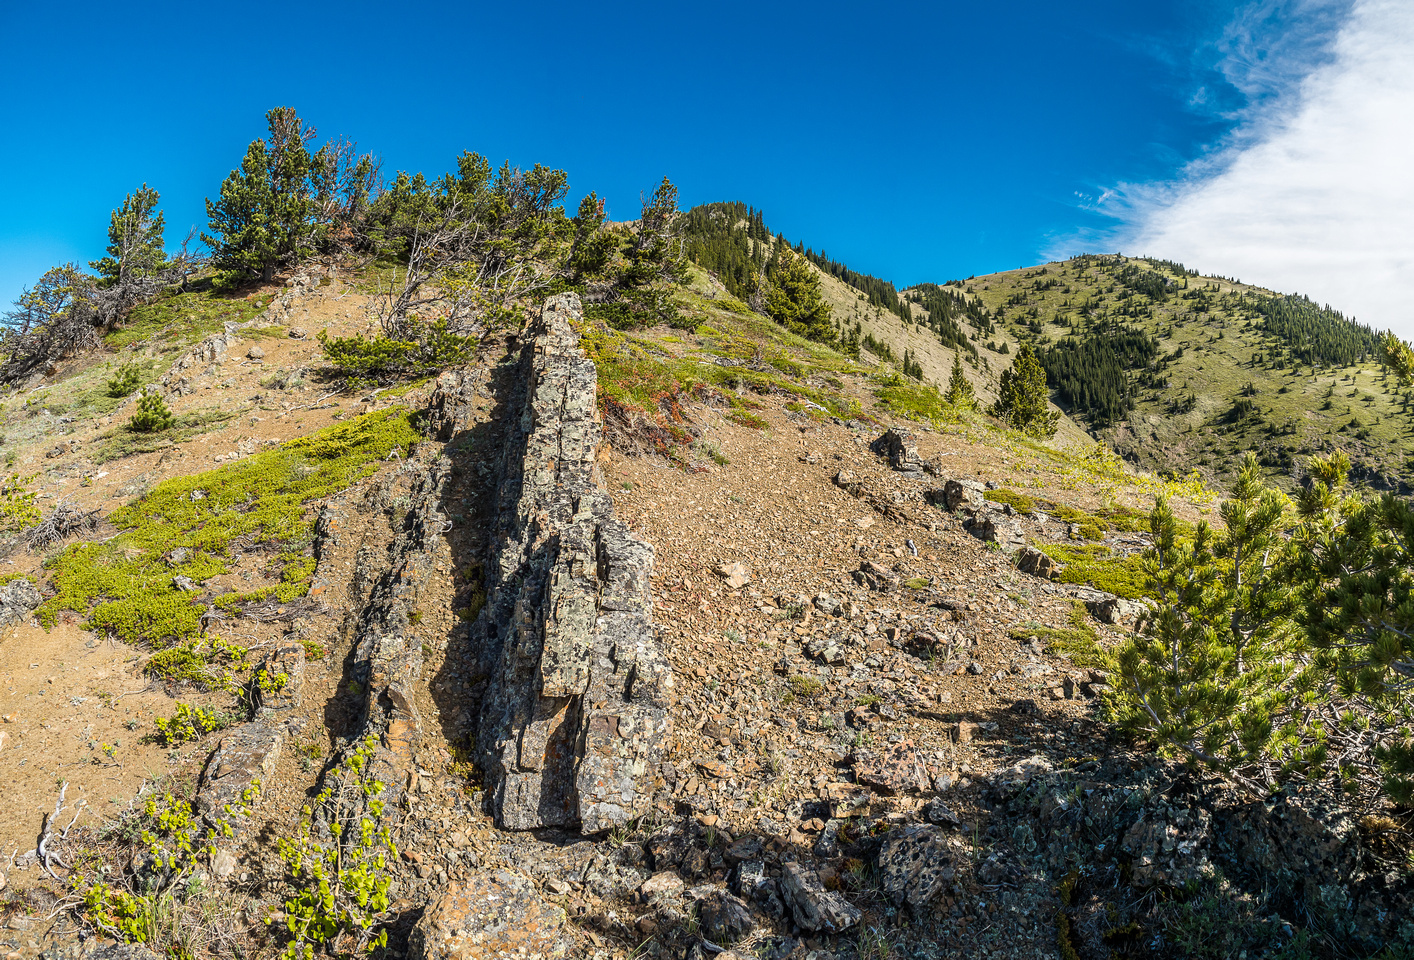 Interesting rock formations on the ridge.